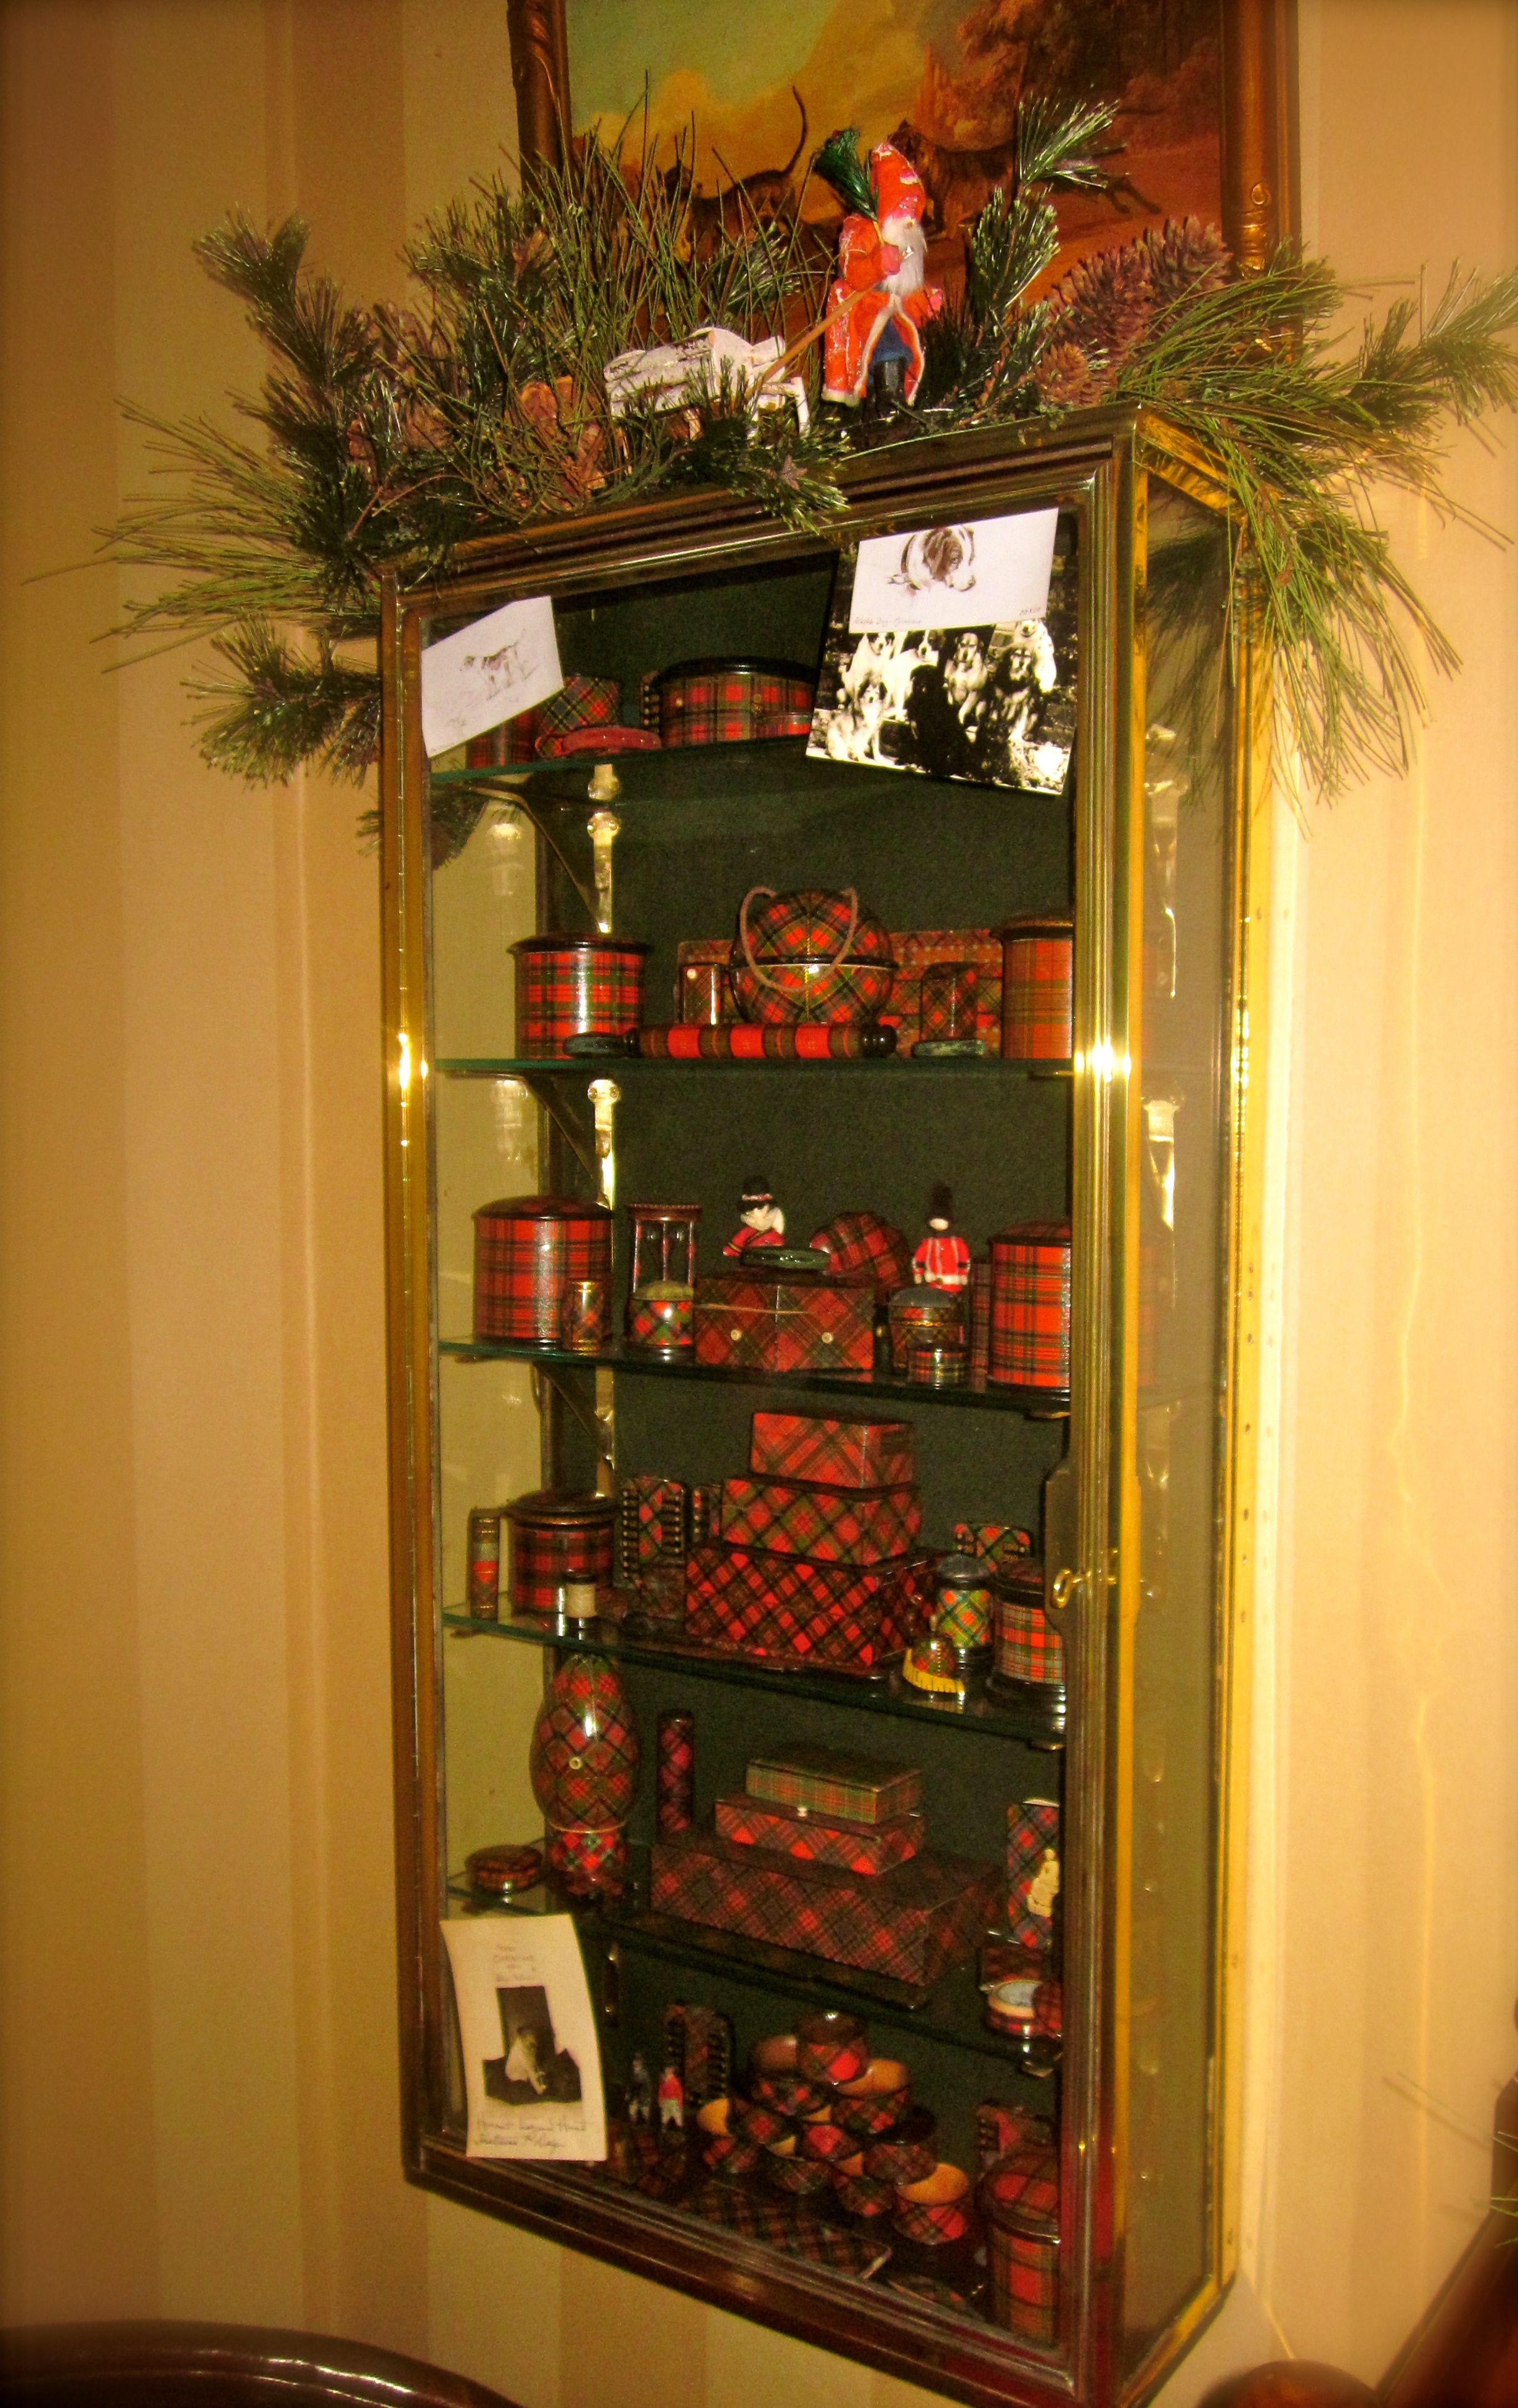 Christmas ornament display case - My Collection Of Tartan Ware In An Old Brass And Glass Display Case Christmas 2011